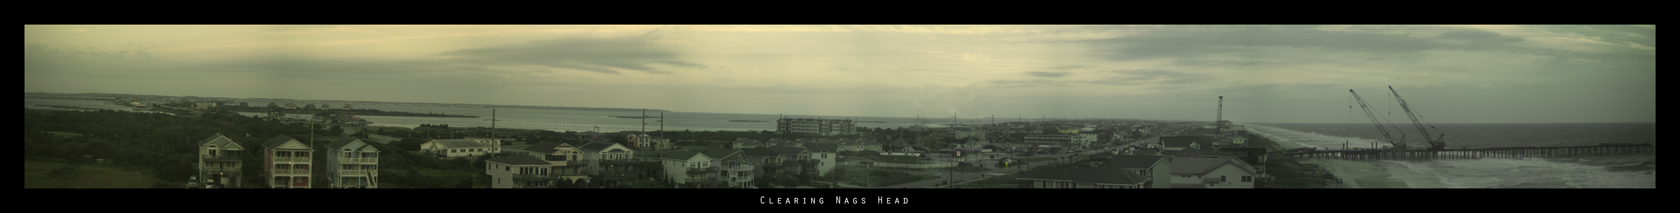 Clearing Nags Head by Sudak